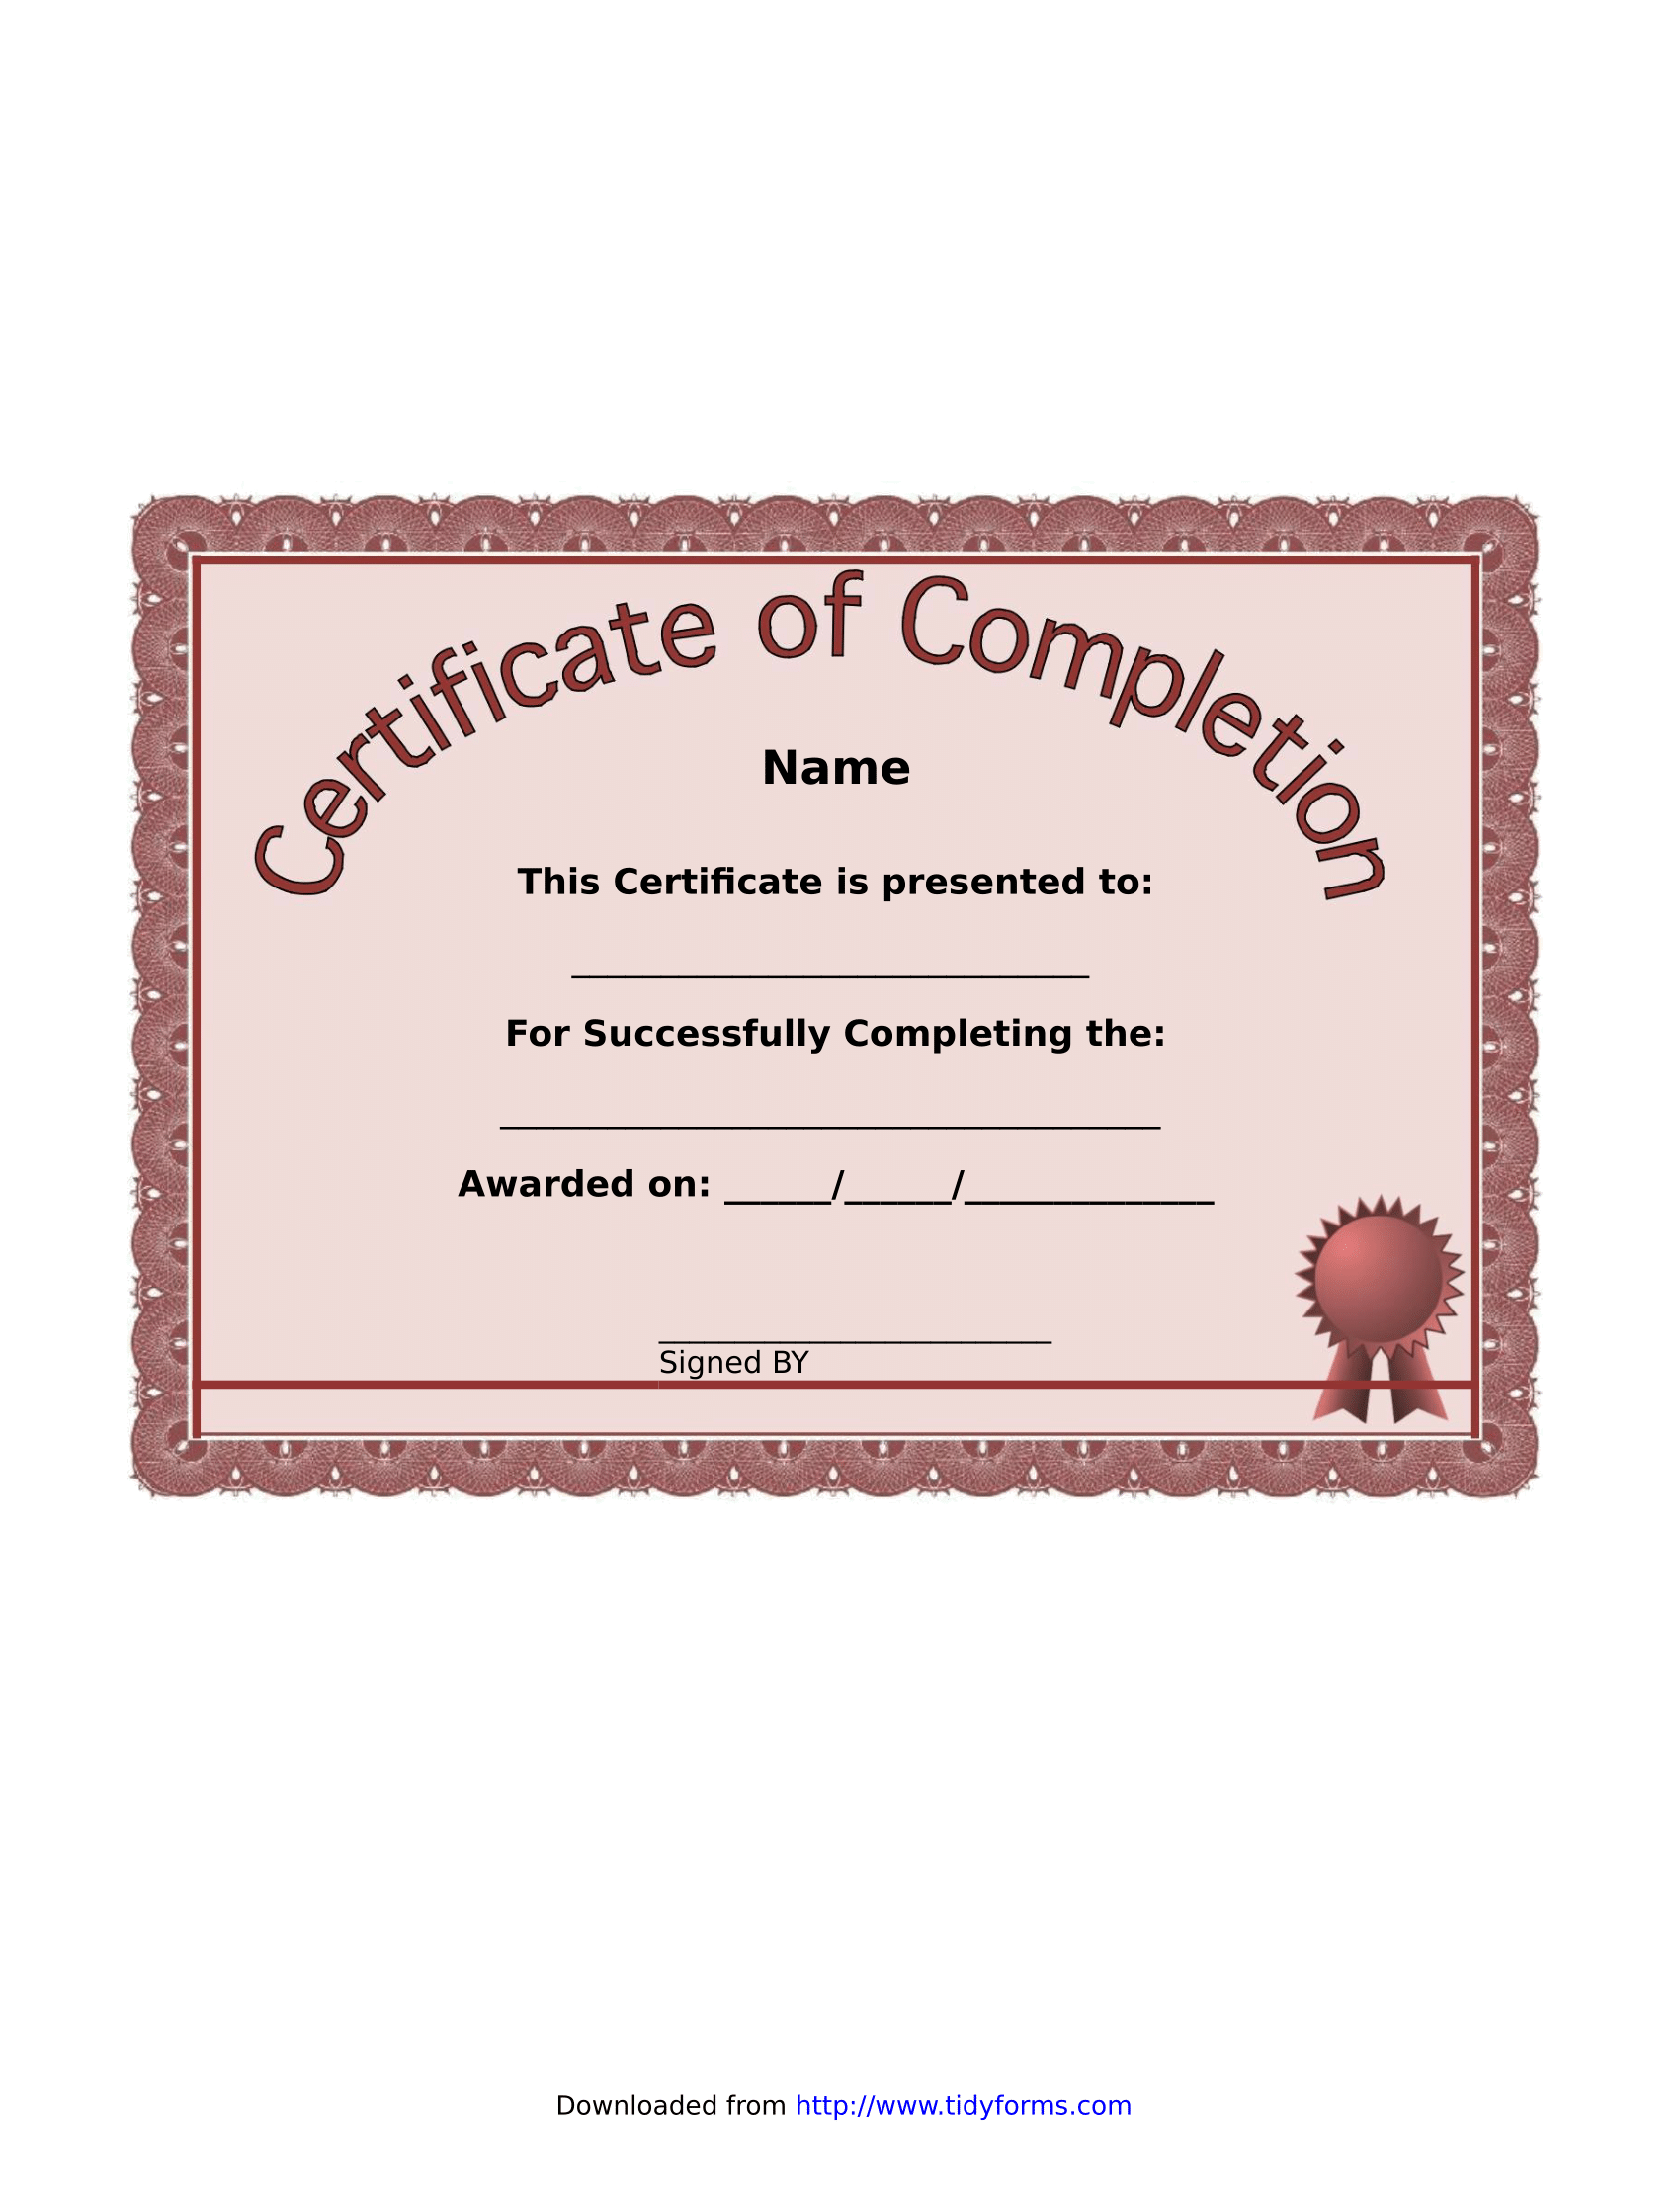 Certificate of Completion – FREE Download